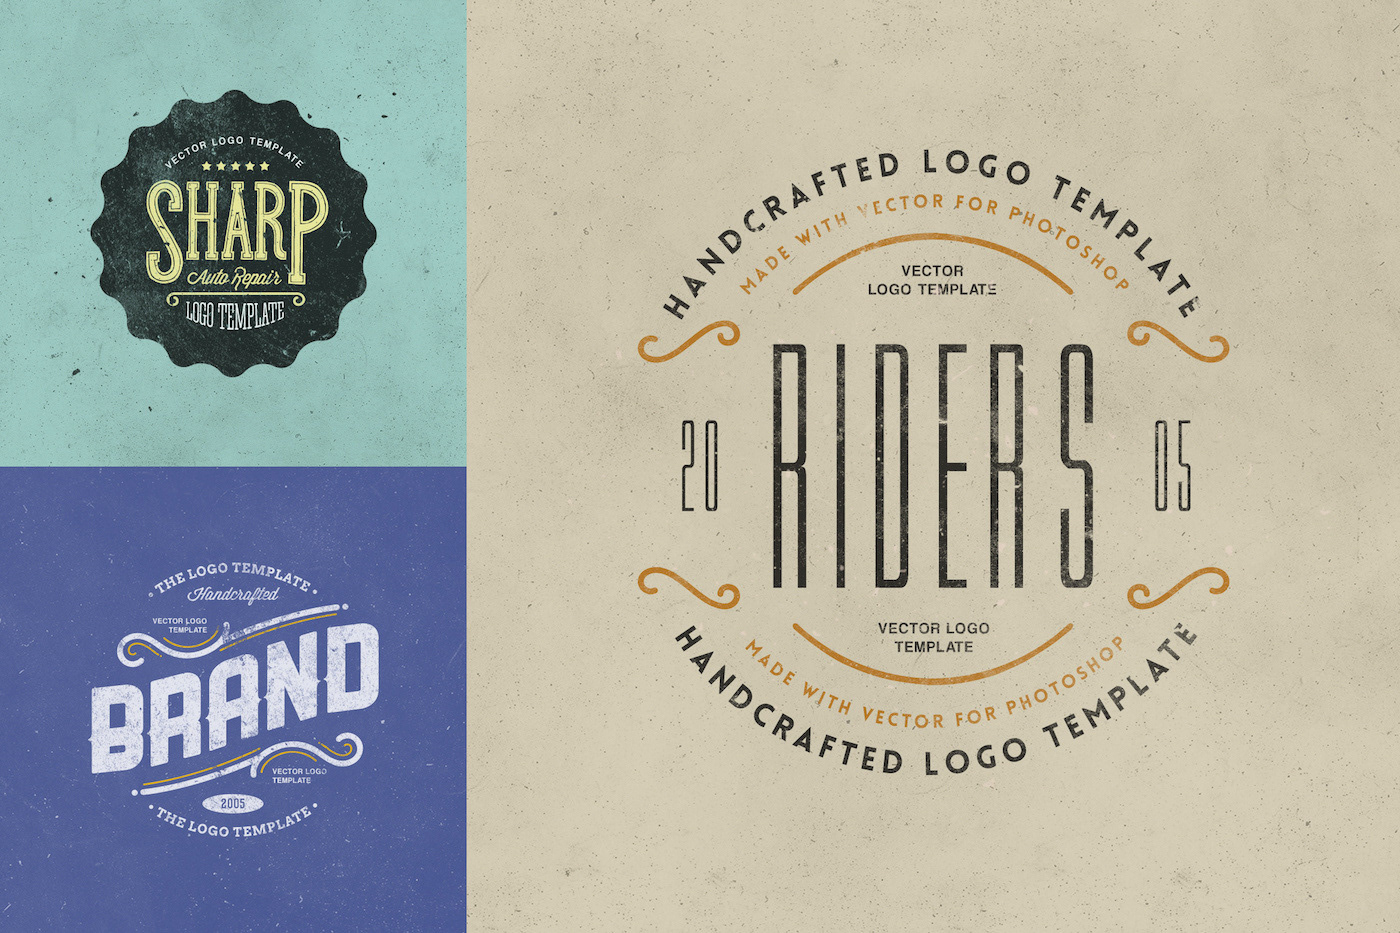 Badges & Logos Vol.03